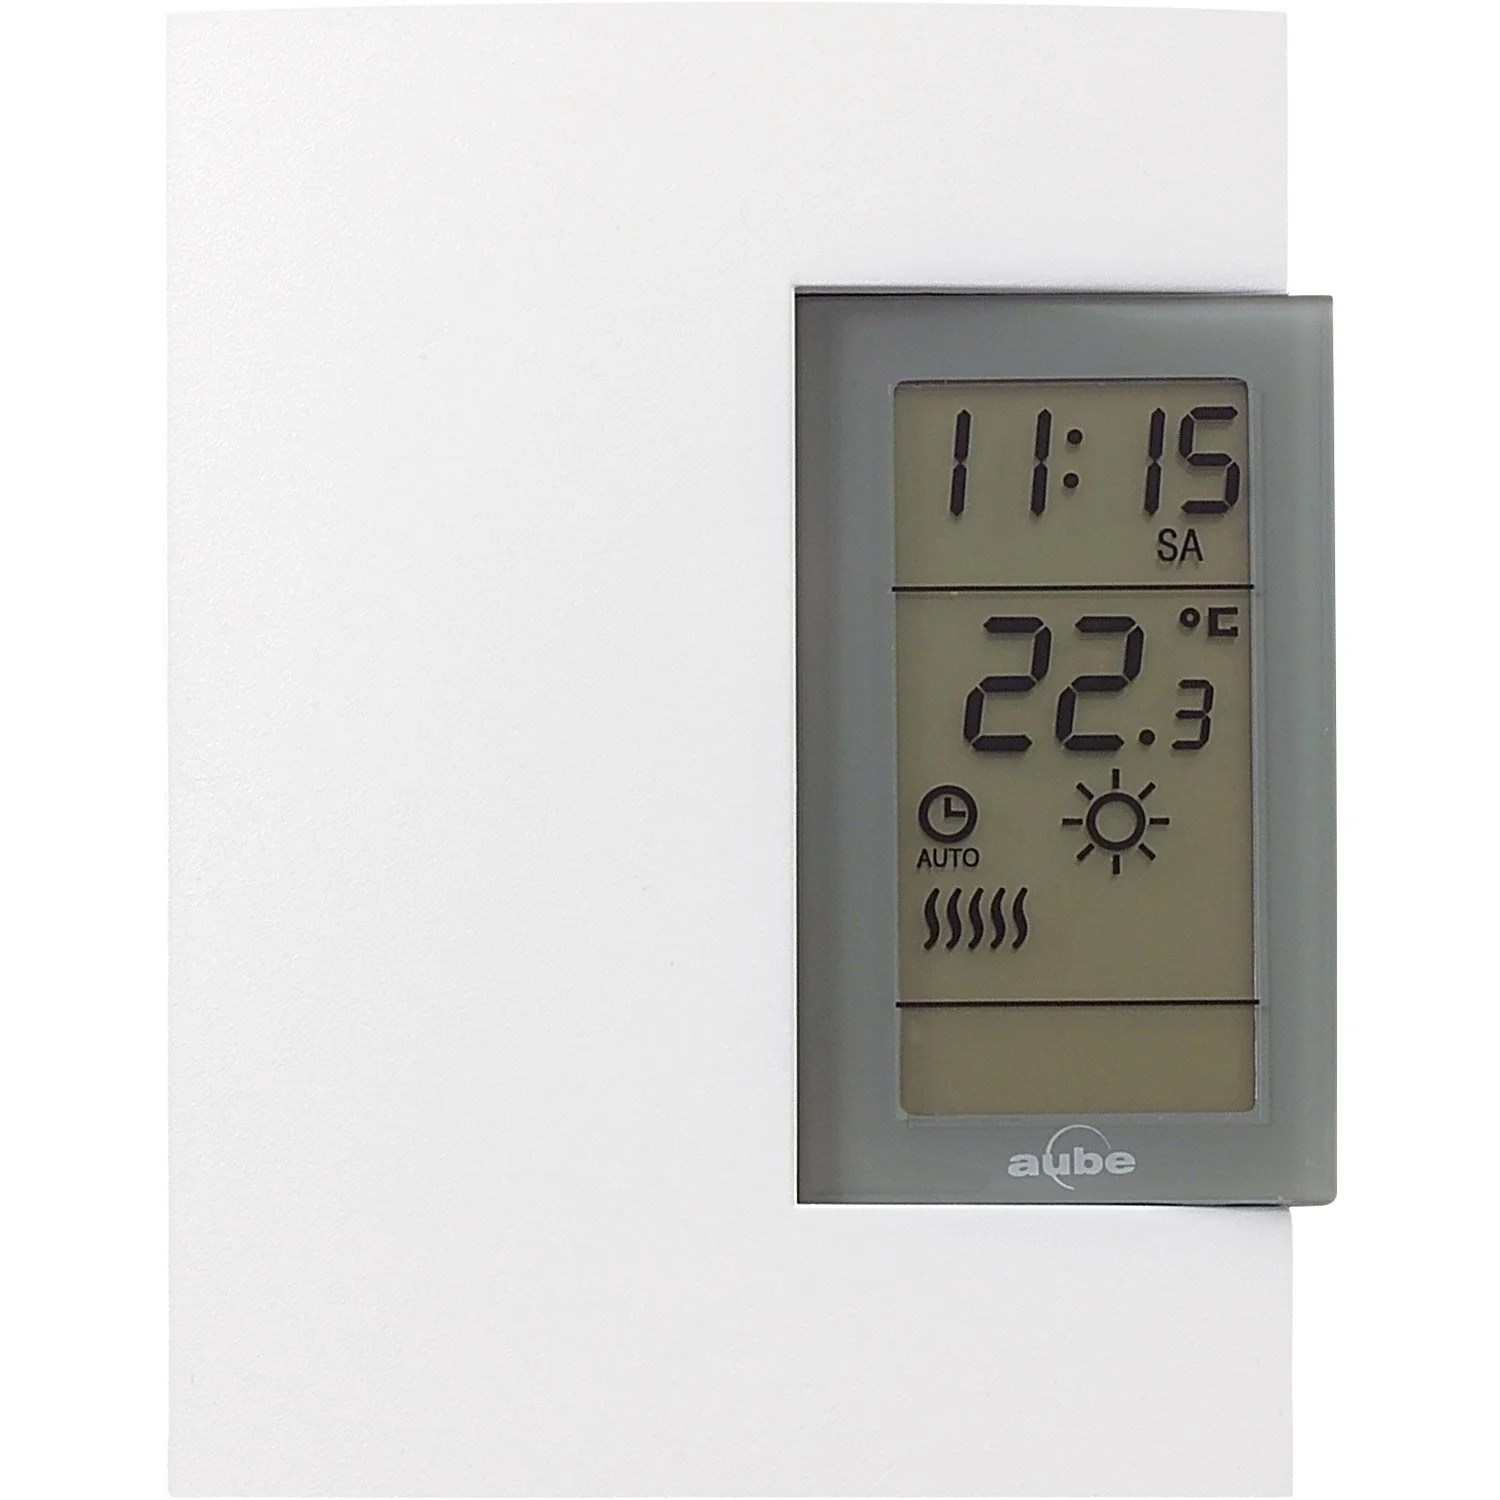 Thermostat Chaudiere Gaz Leroy Merlin Thermostat D Ambiance Programmable Filaire De Dietrich Thermostat